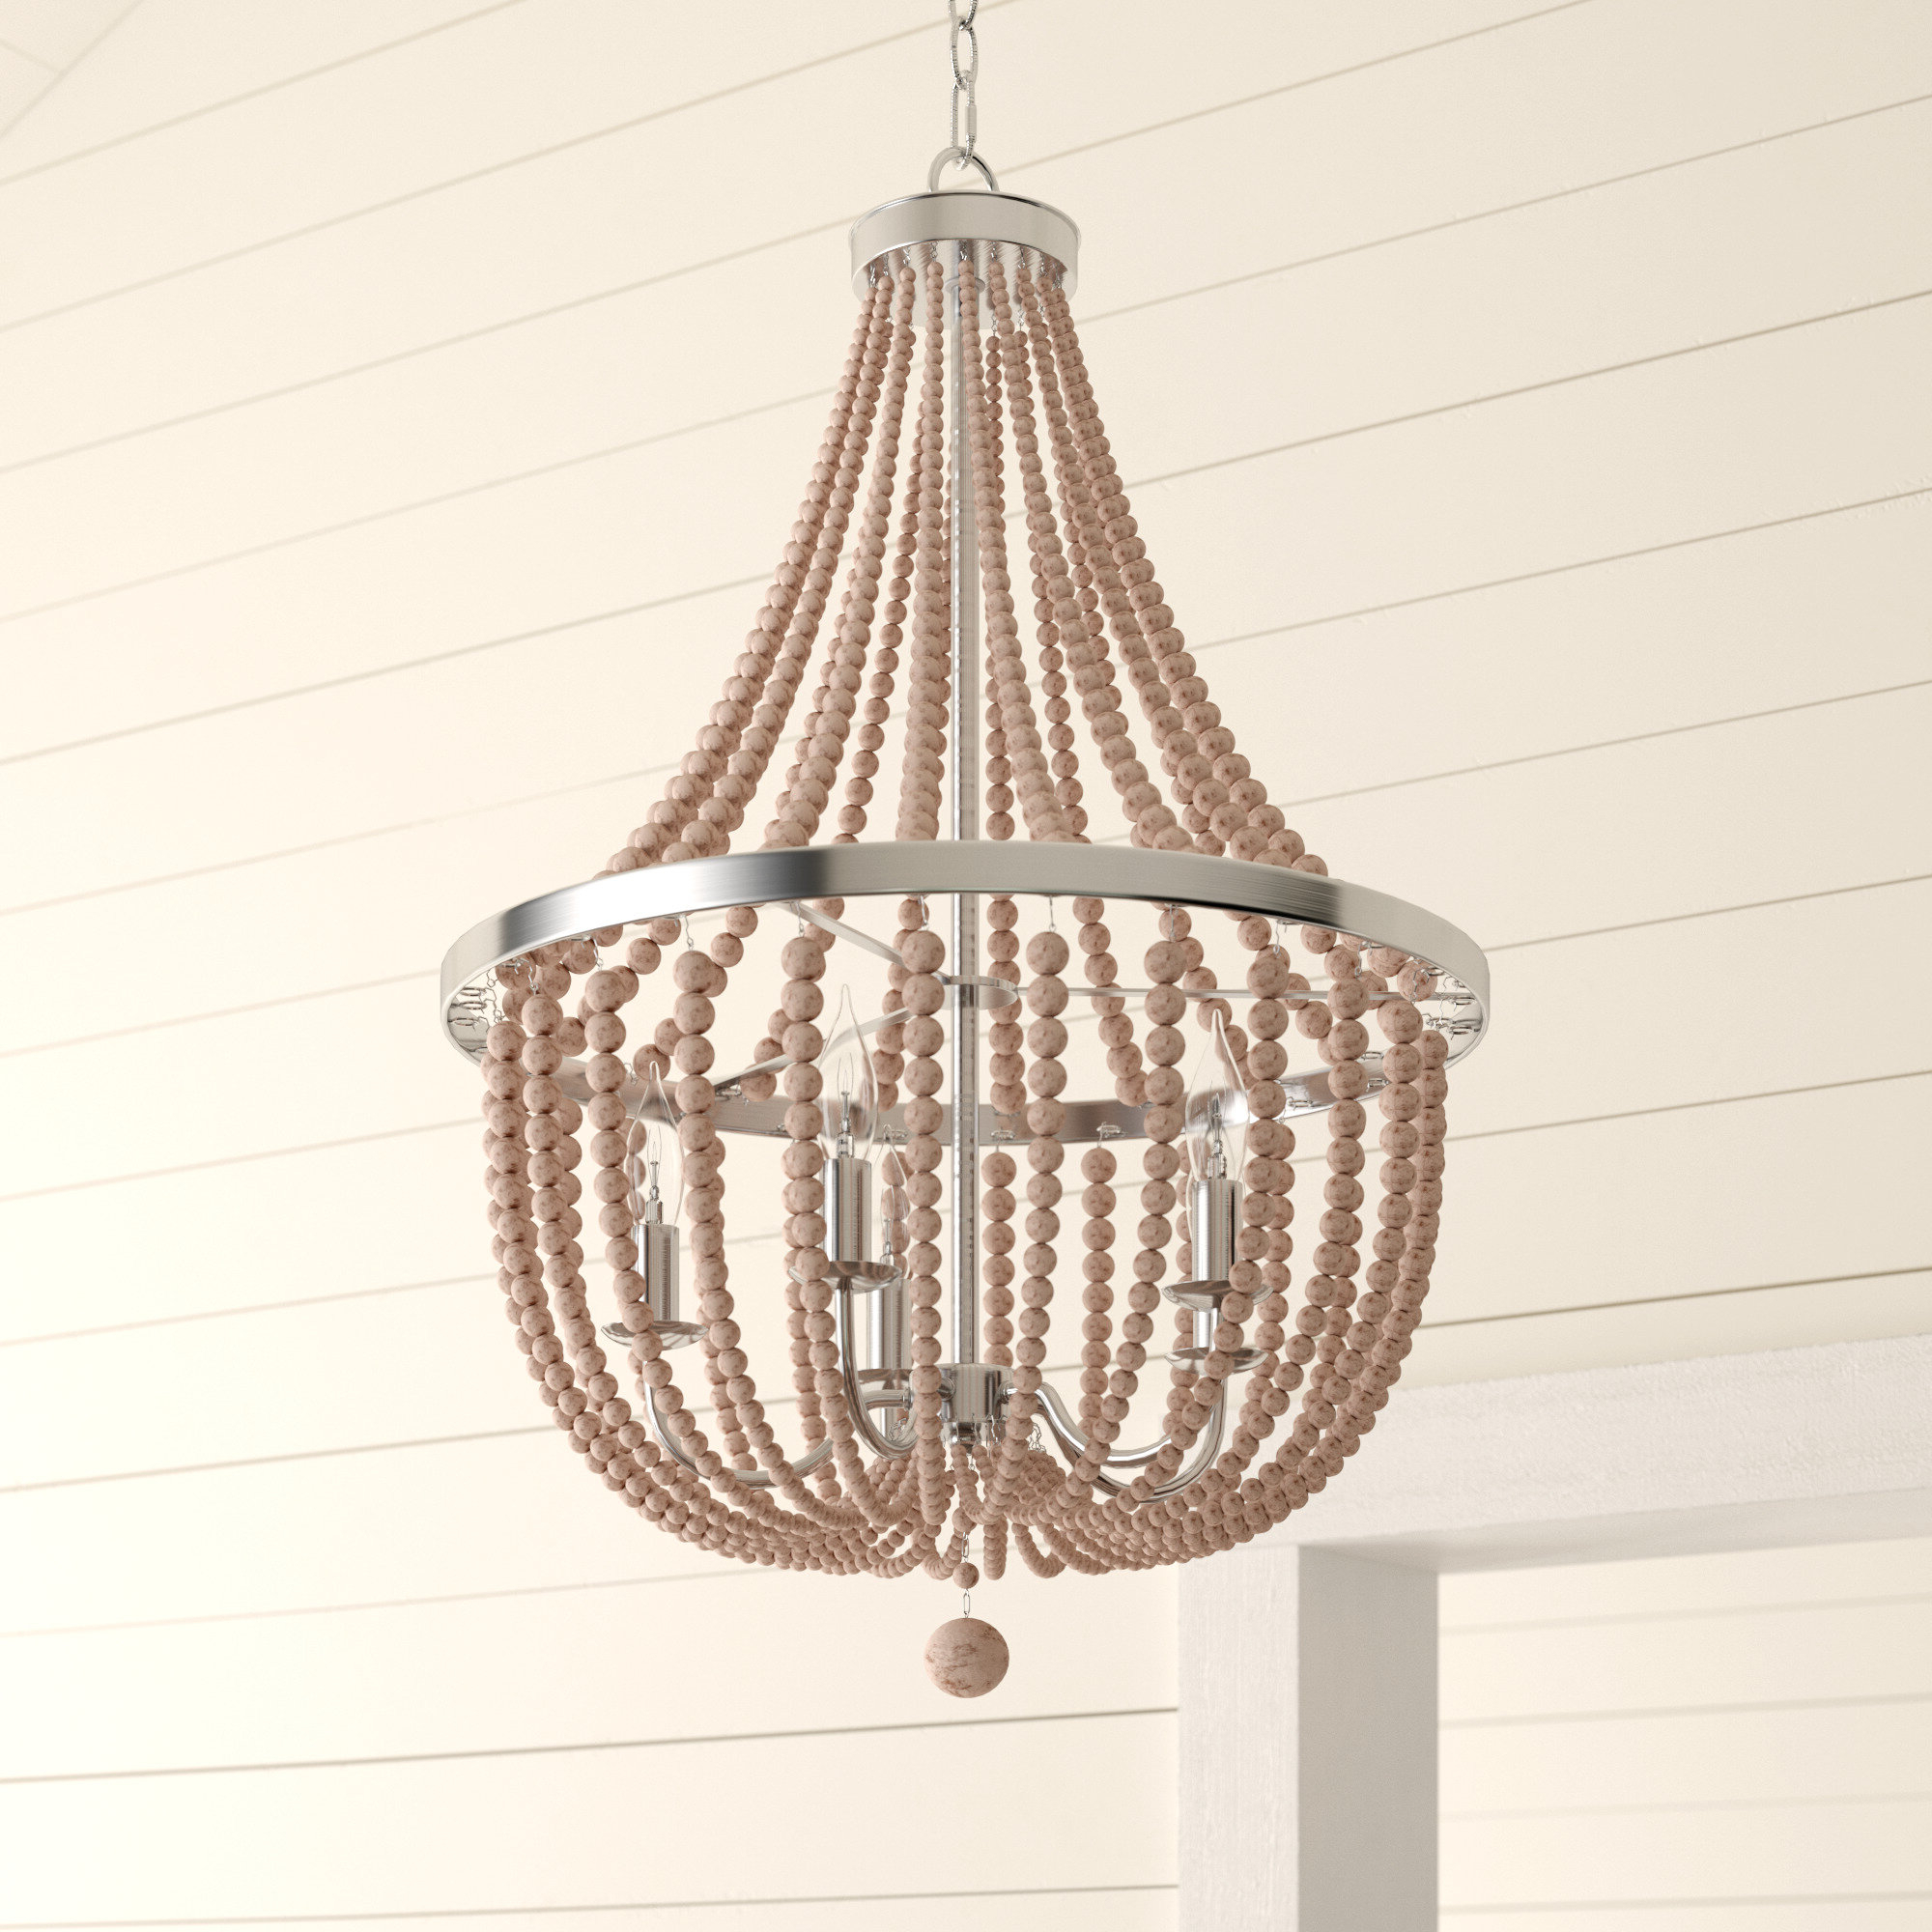 Favorite Bay Isle Home Tilden Wood Bead 5 Light Empire Chandelier Regarding Kenna 5 Light Empire Chandeliers (View 4 of 20)